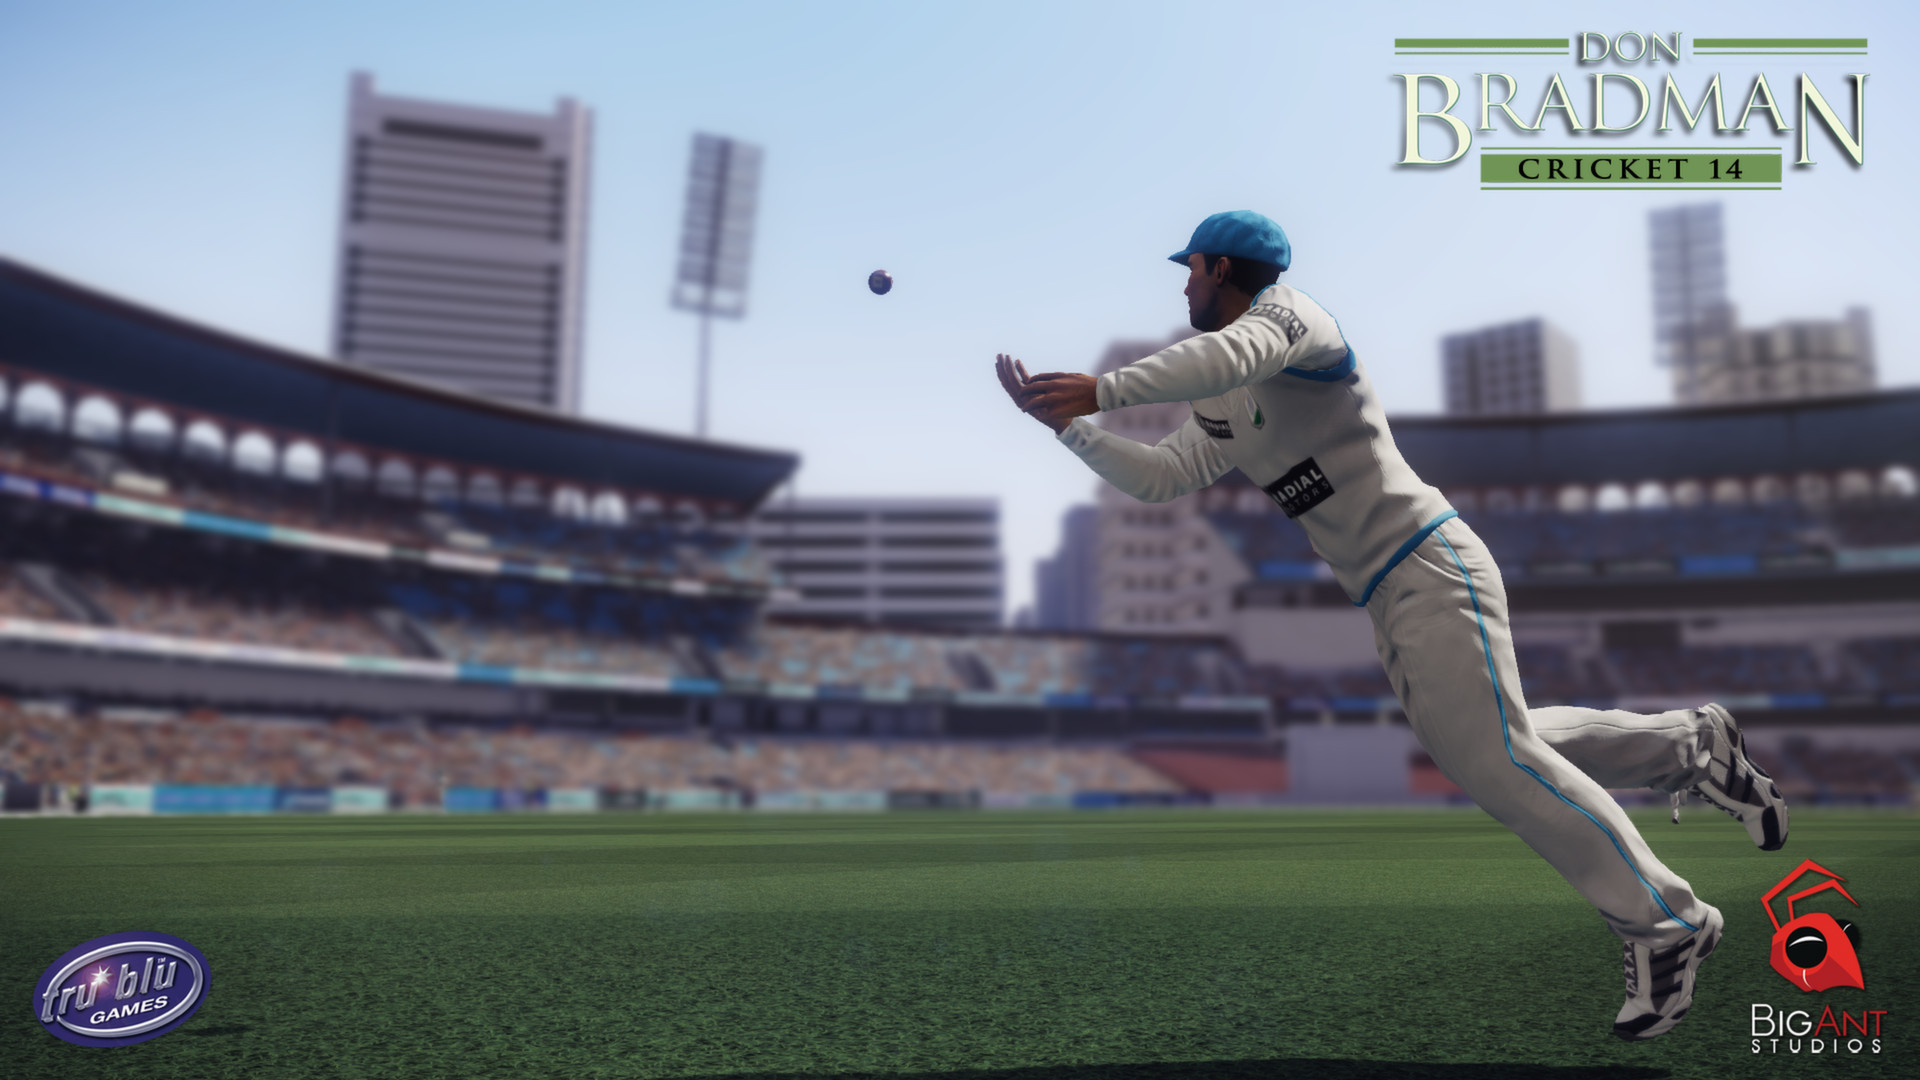 Don Bradman Cricket 14 System Requirements - Can I Run It